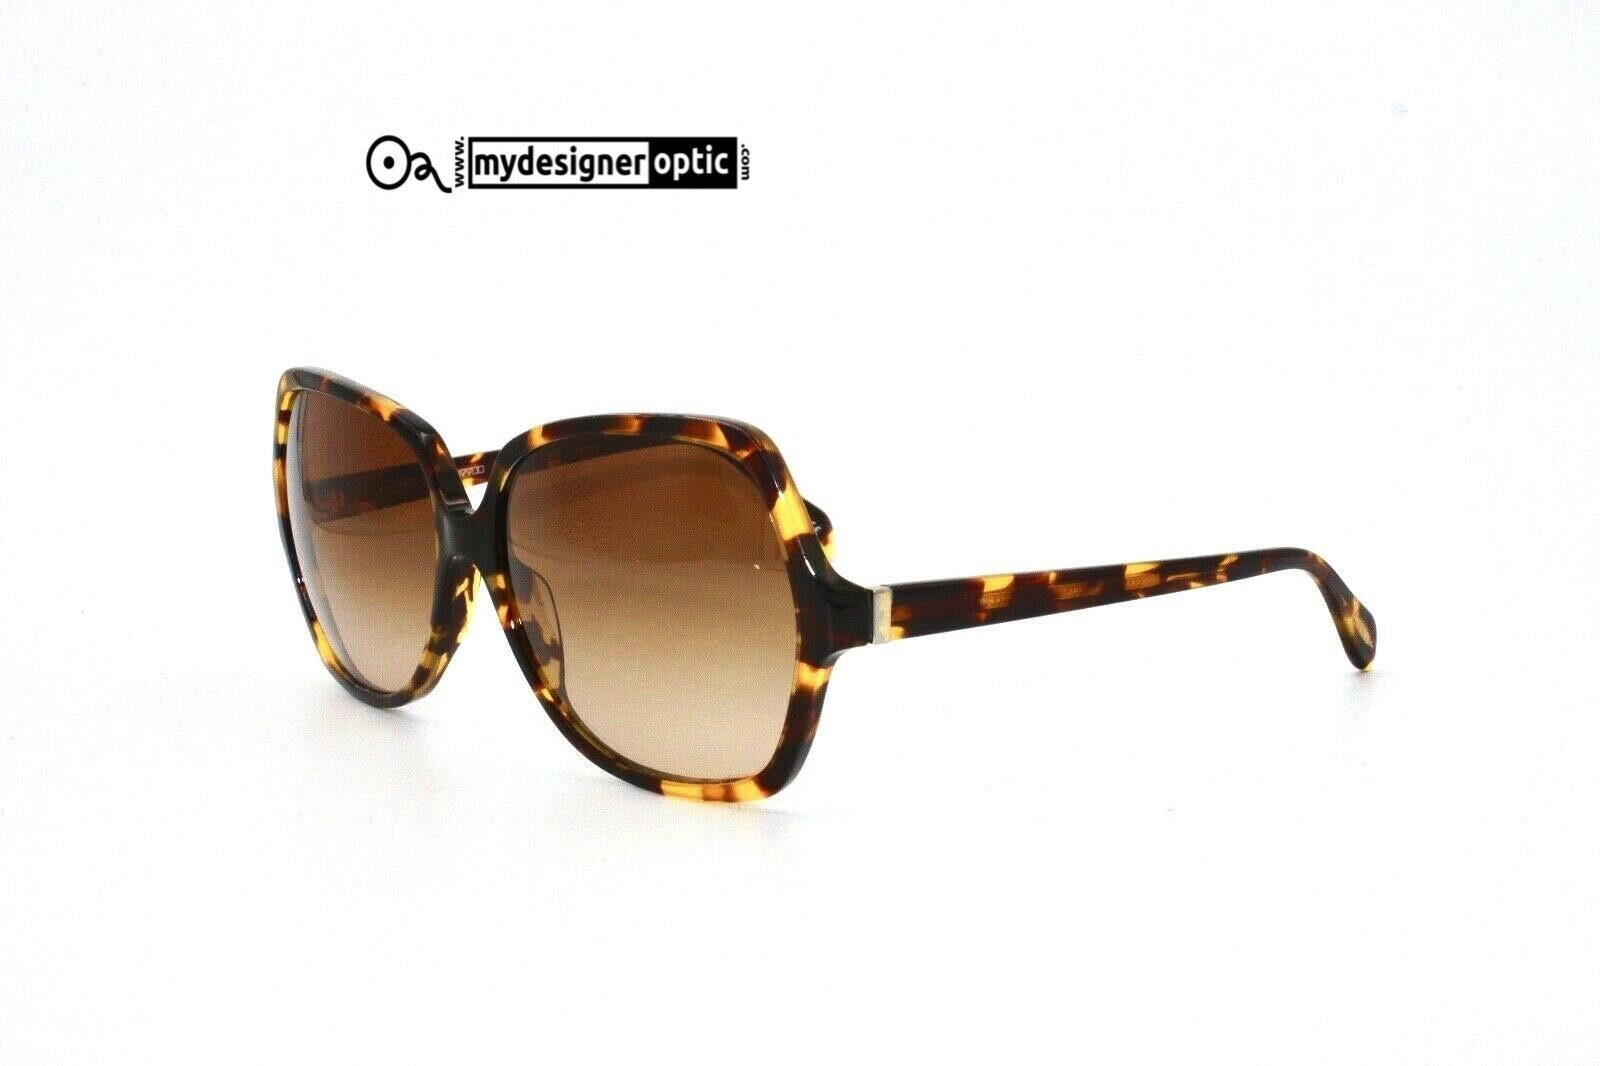 Oliver Peoples Sunglasses OV5159-S 1084/13 Lainie 62-15-135 2N Hand Made in Italy - Mydesigneroptic